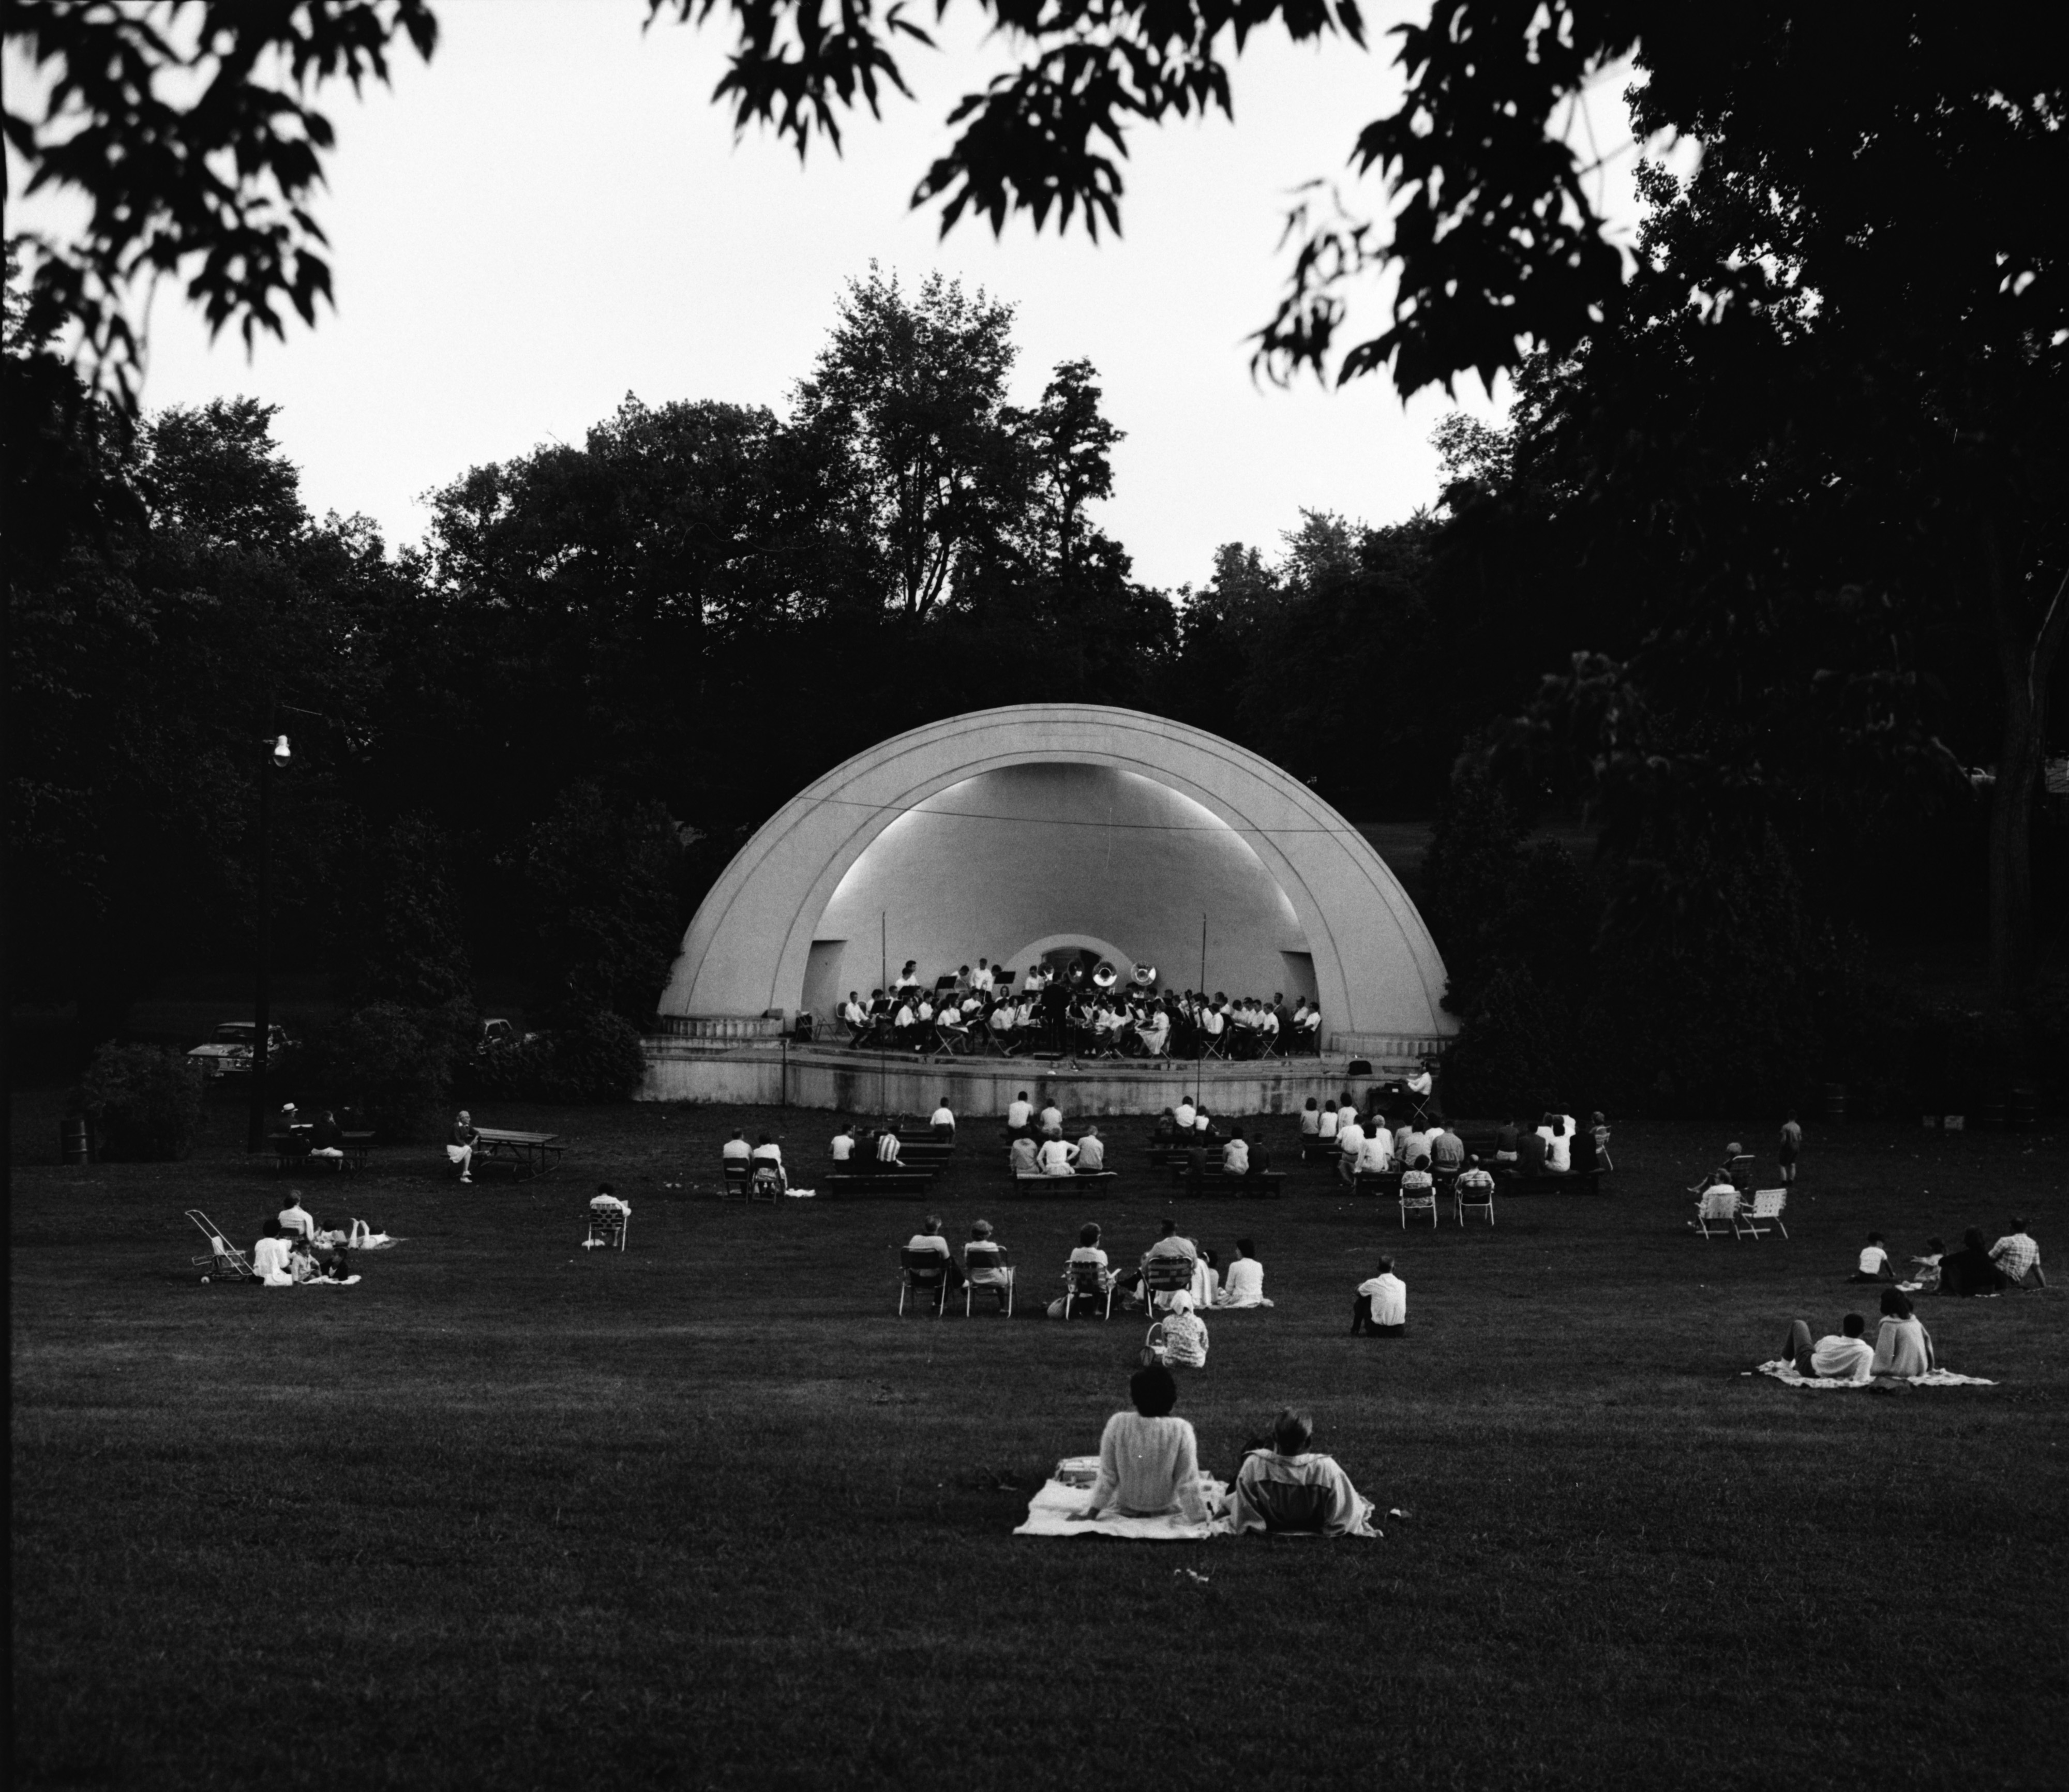 West Park Bandshell in Evening image